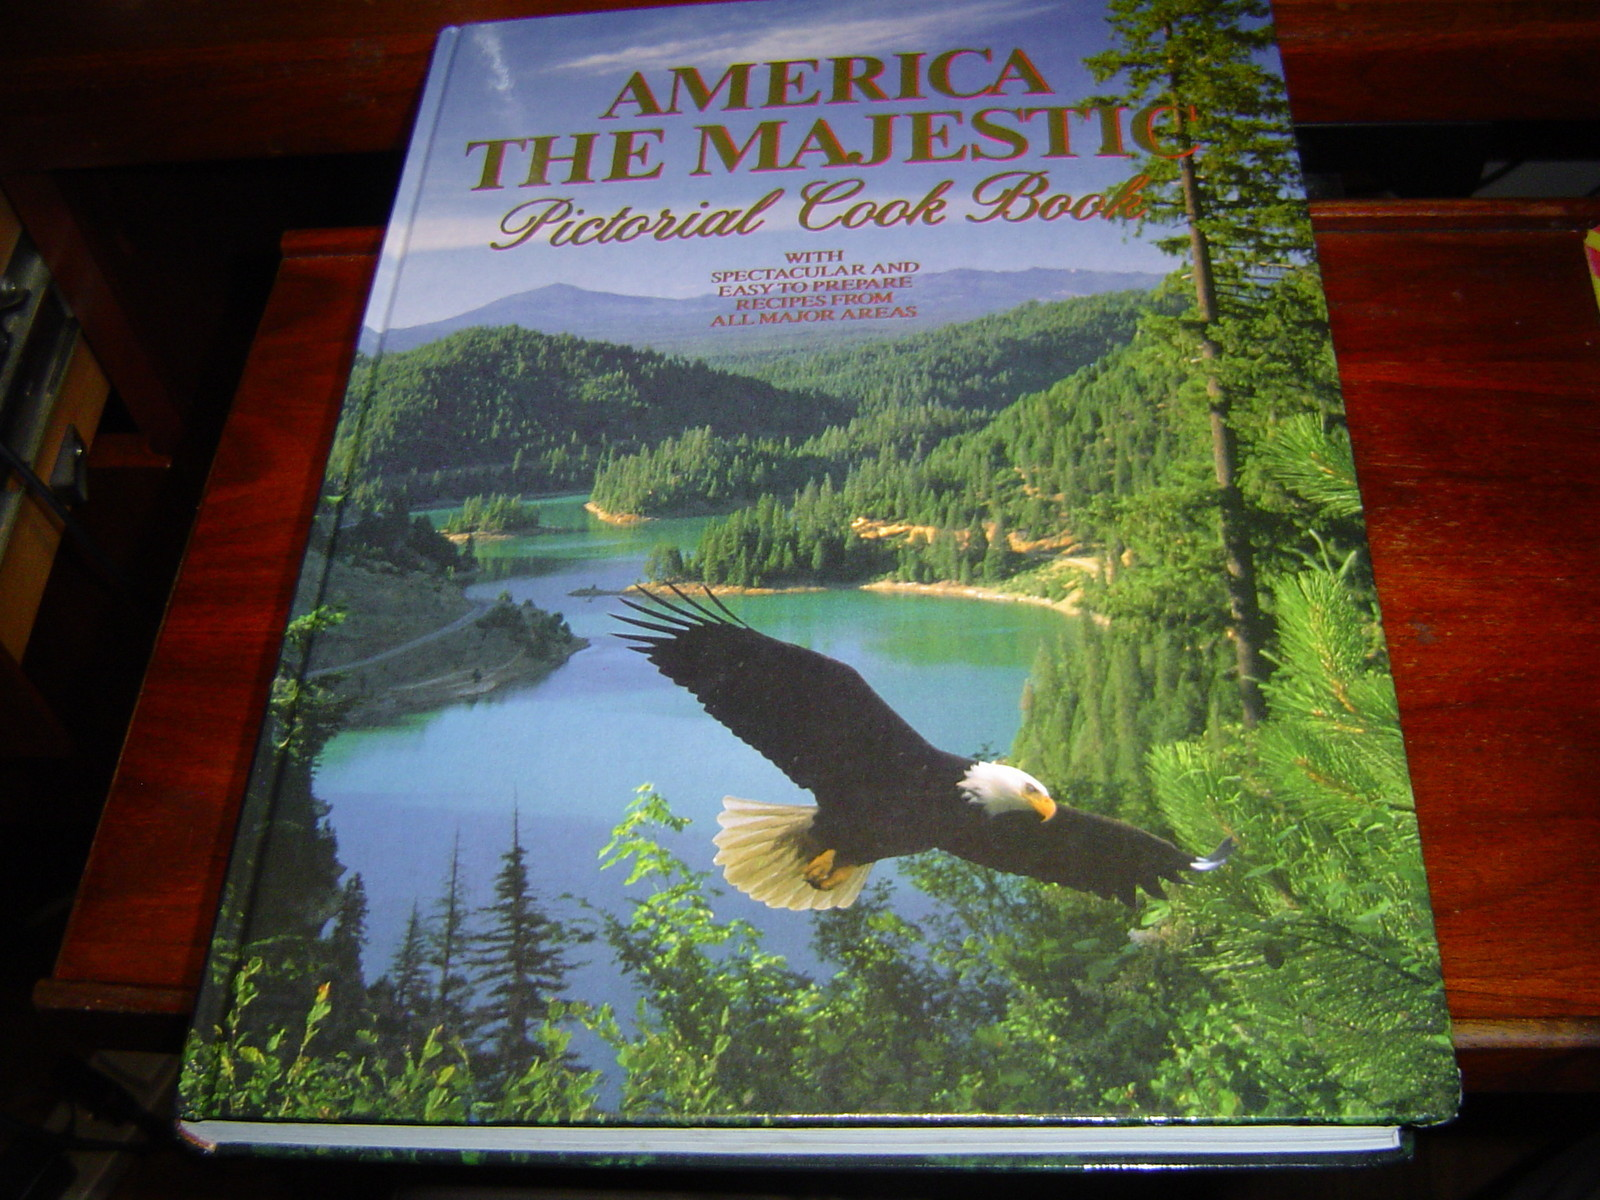 Primary image for AMERICA THE MAJESTIC PICTORIAL COOK BOOK (1981) LARGE HARDCOVER